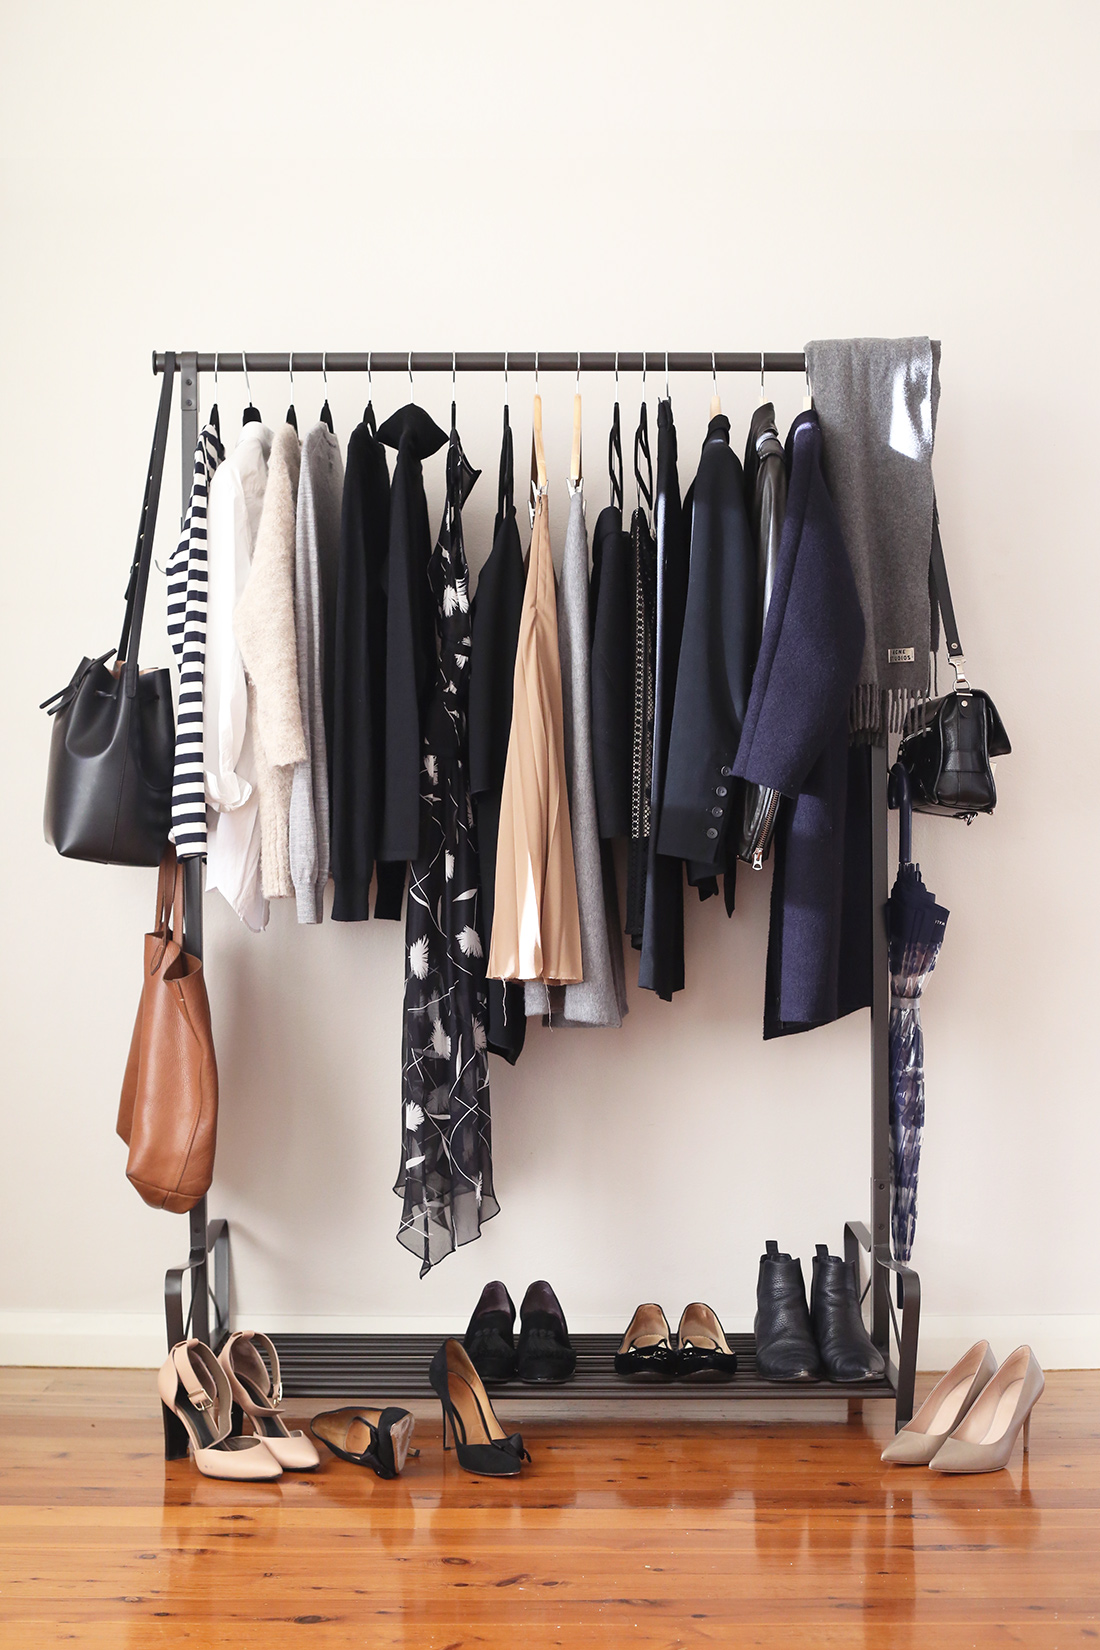 The Relaxed Winter Capsule Wardrobe